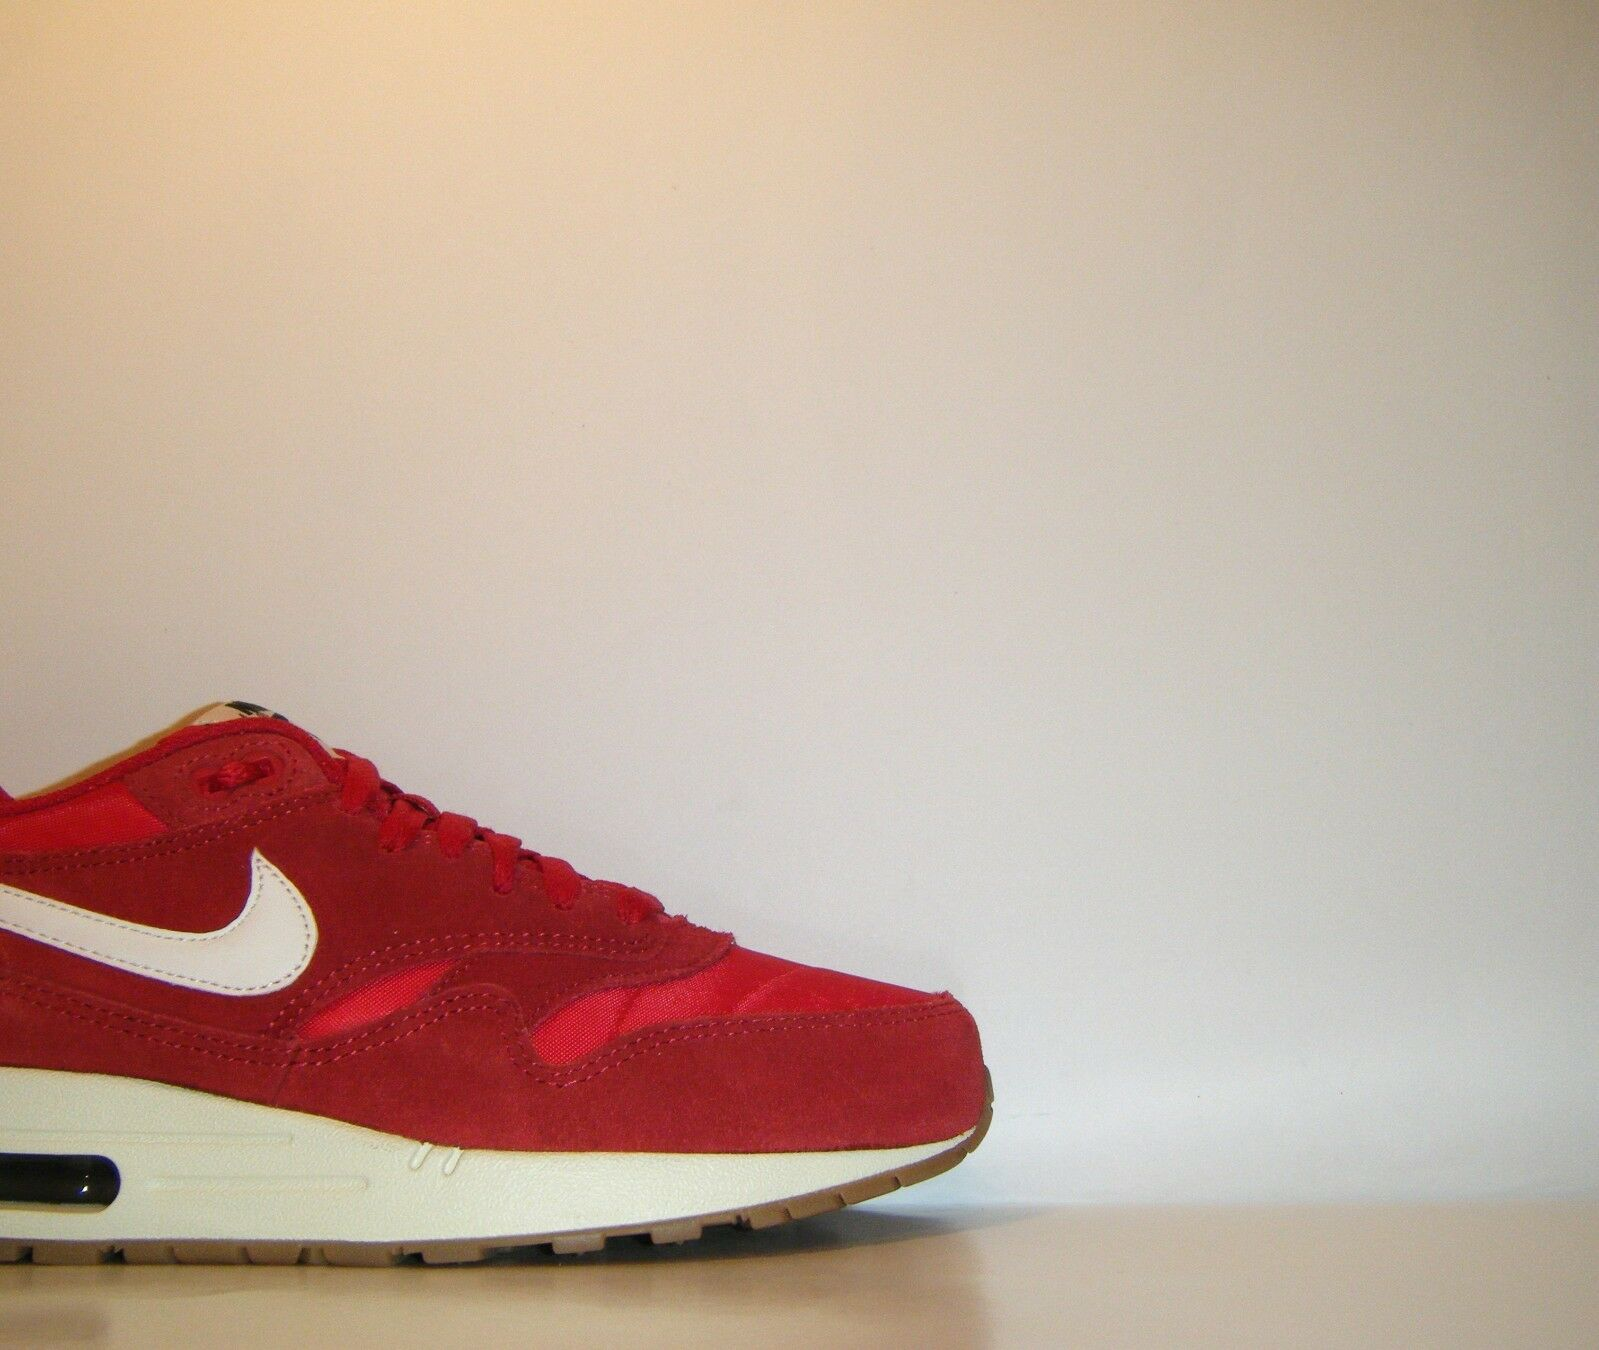 2014 Nike Air Max 1 Essential Premium Red Gum QS Sz. 7.5 OG Day Atmos 537383-611